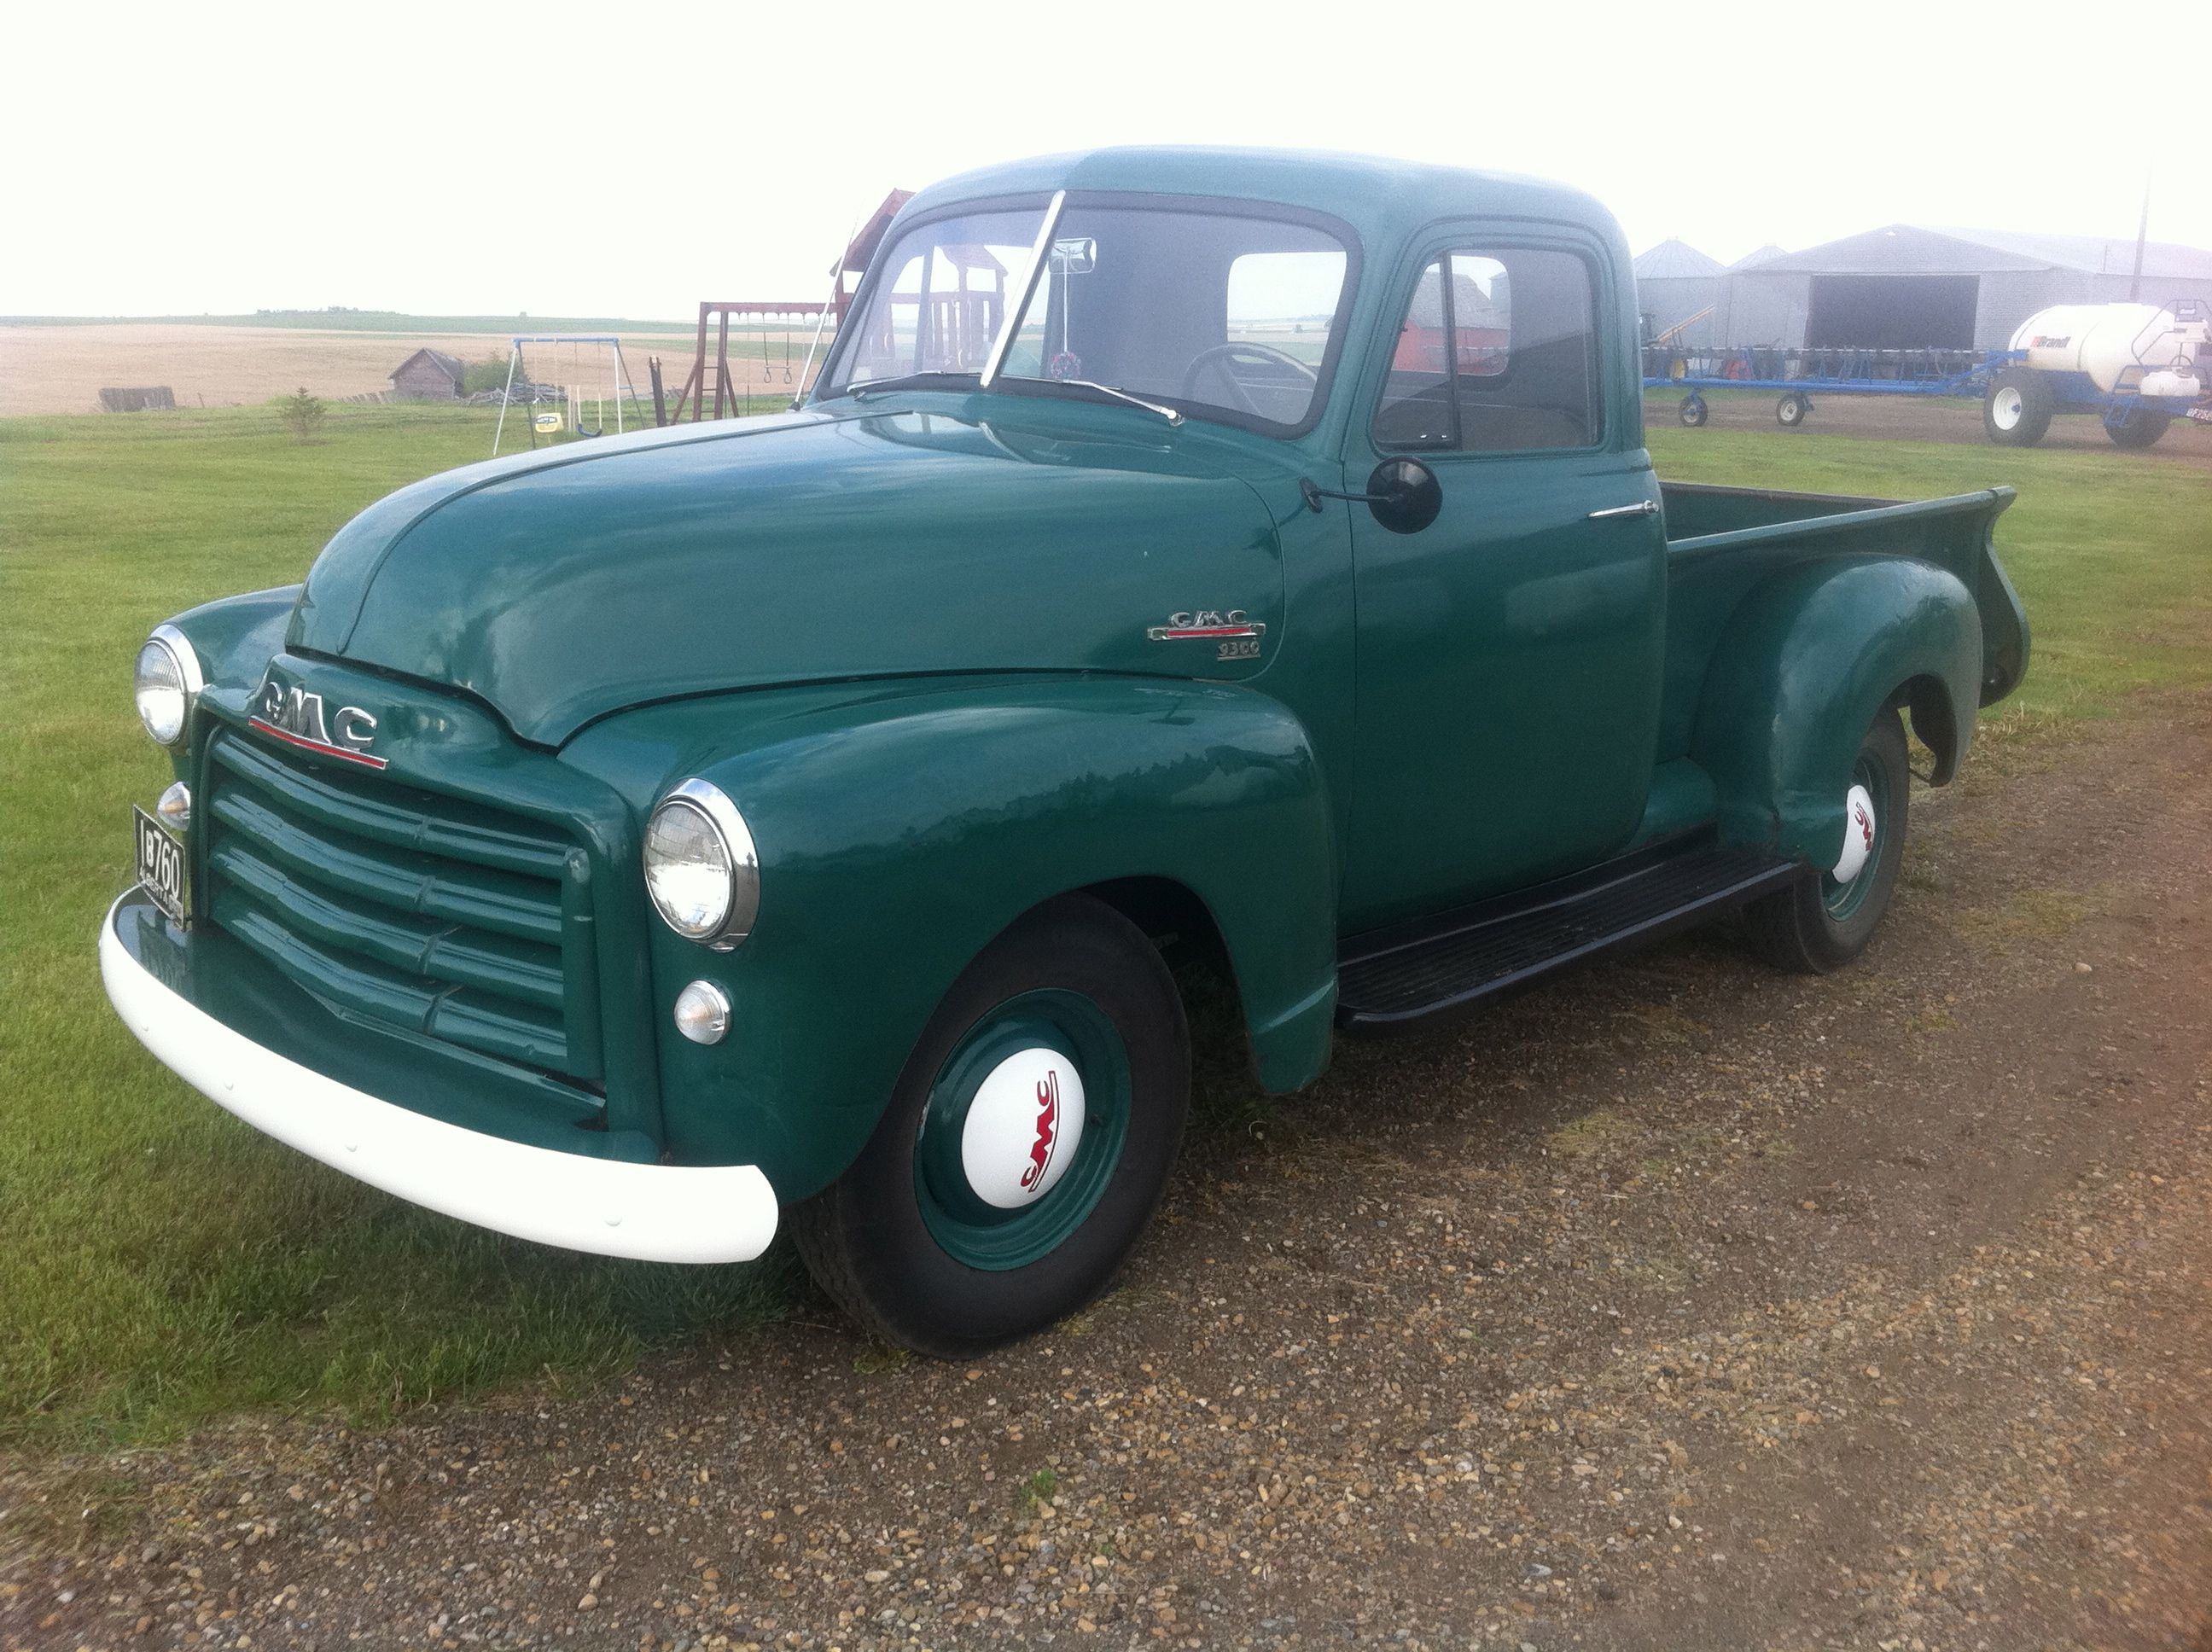 Baby Truck My Baby 3953 Gmc Classic Farm Truck Purchased New By